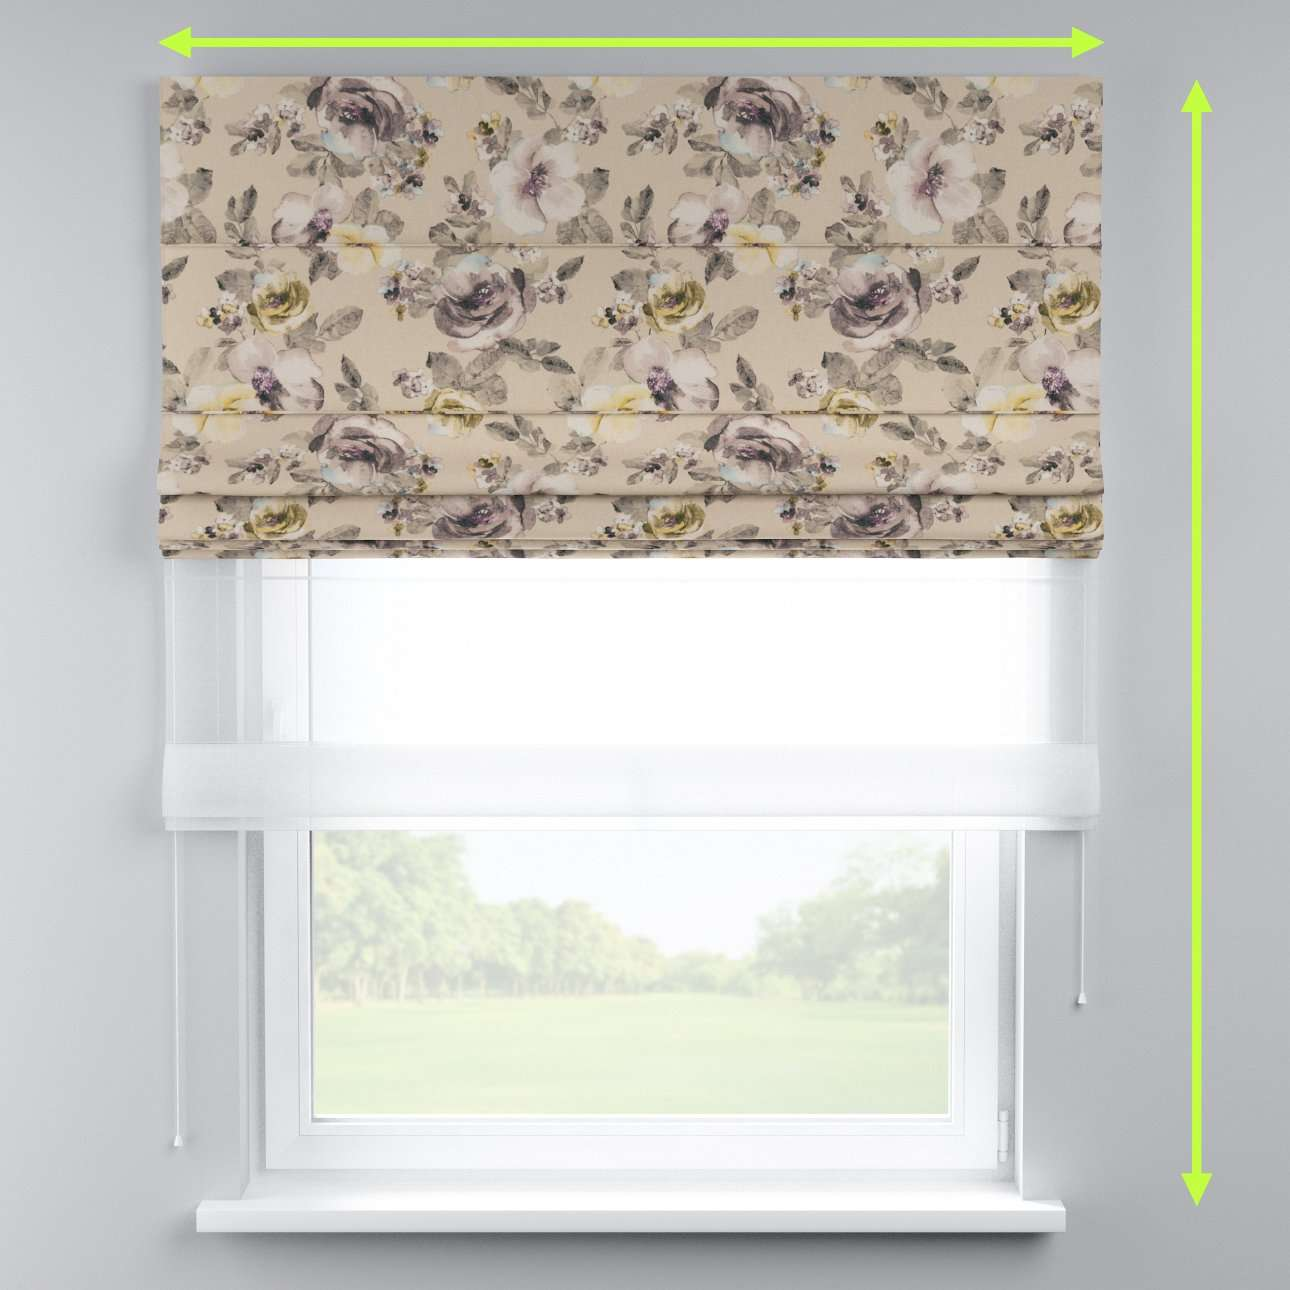 Voile and fabric roman blind (DUO II) in collection Londres, fabric: 140-44